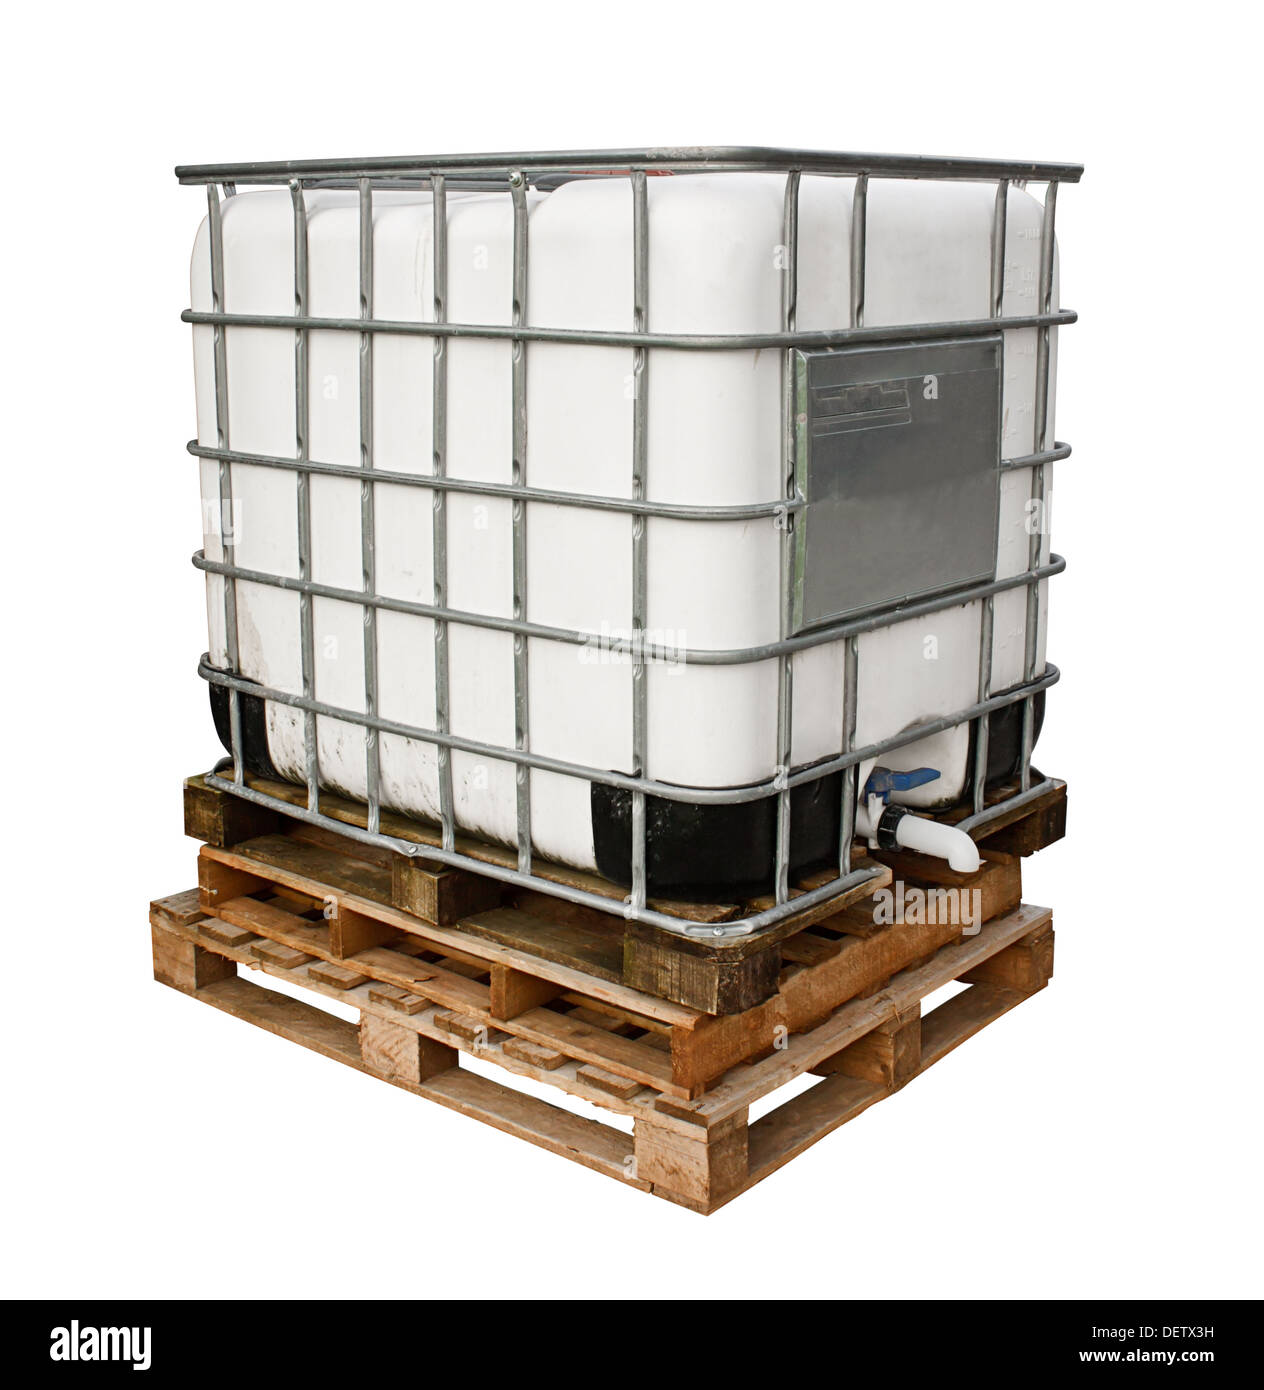 Chemicals container for heavy industry isolated against a white background - Stock Image